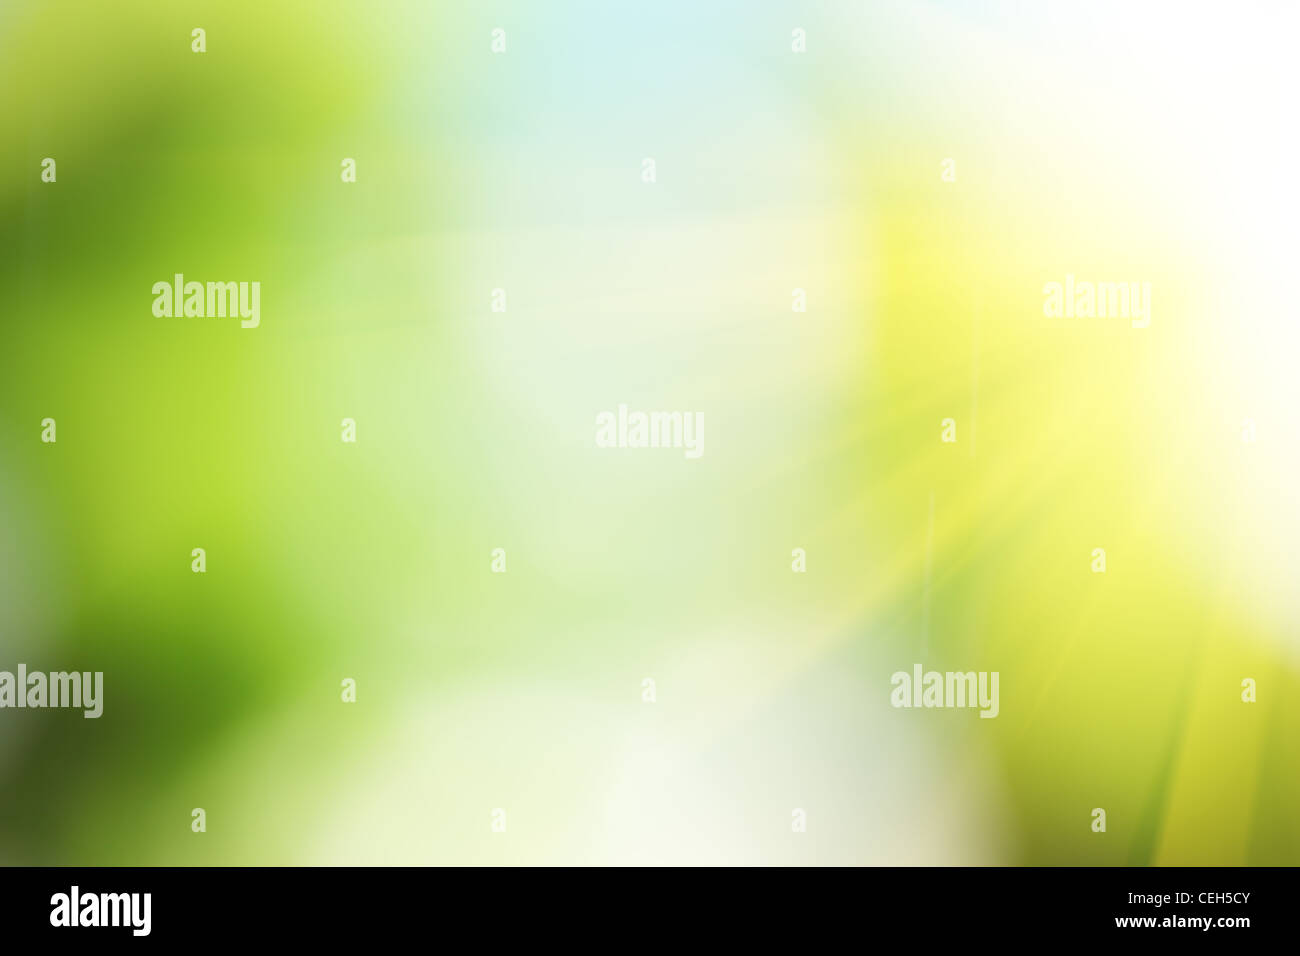 Natural green abstract light background. - Stock Image